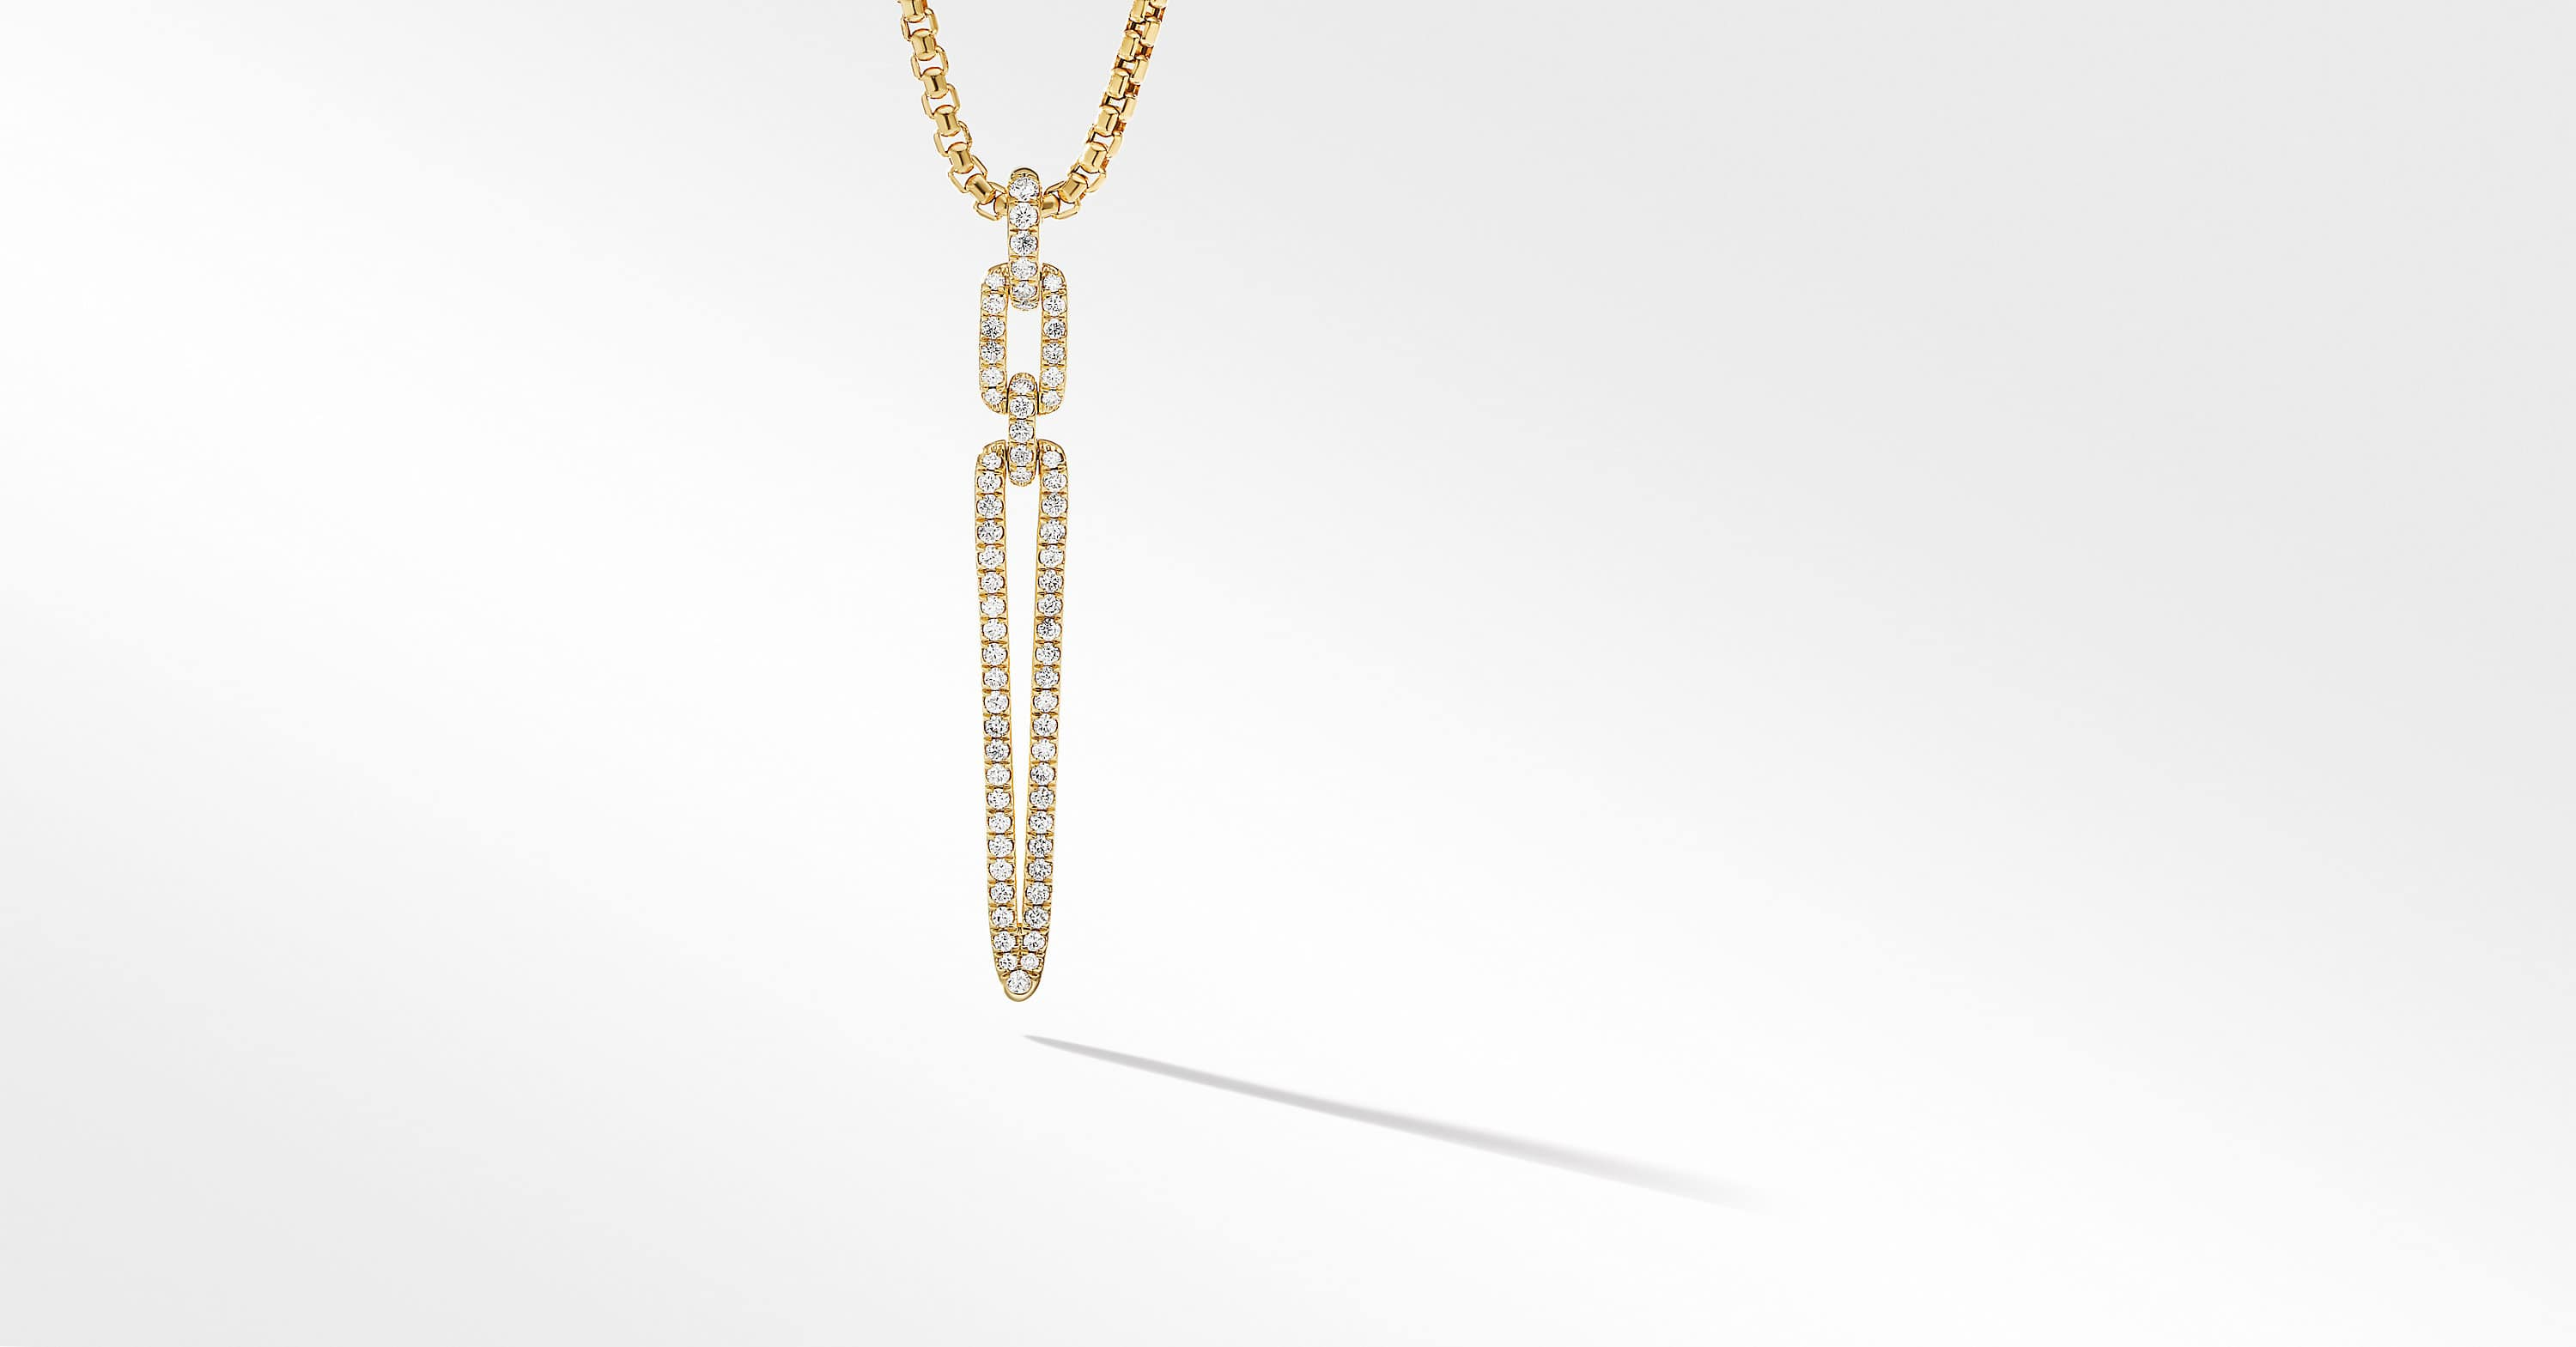 Stax Elongated Pendant in 18K Yellow Gold with Diamonds